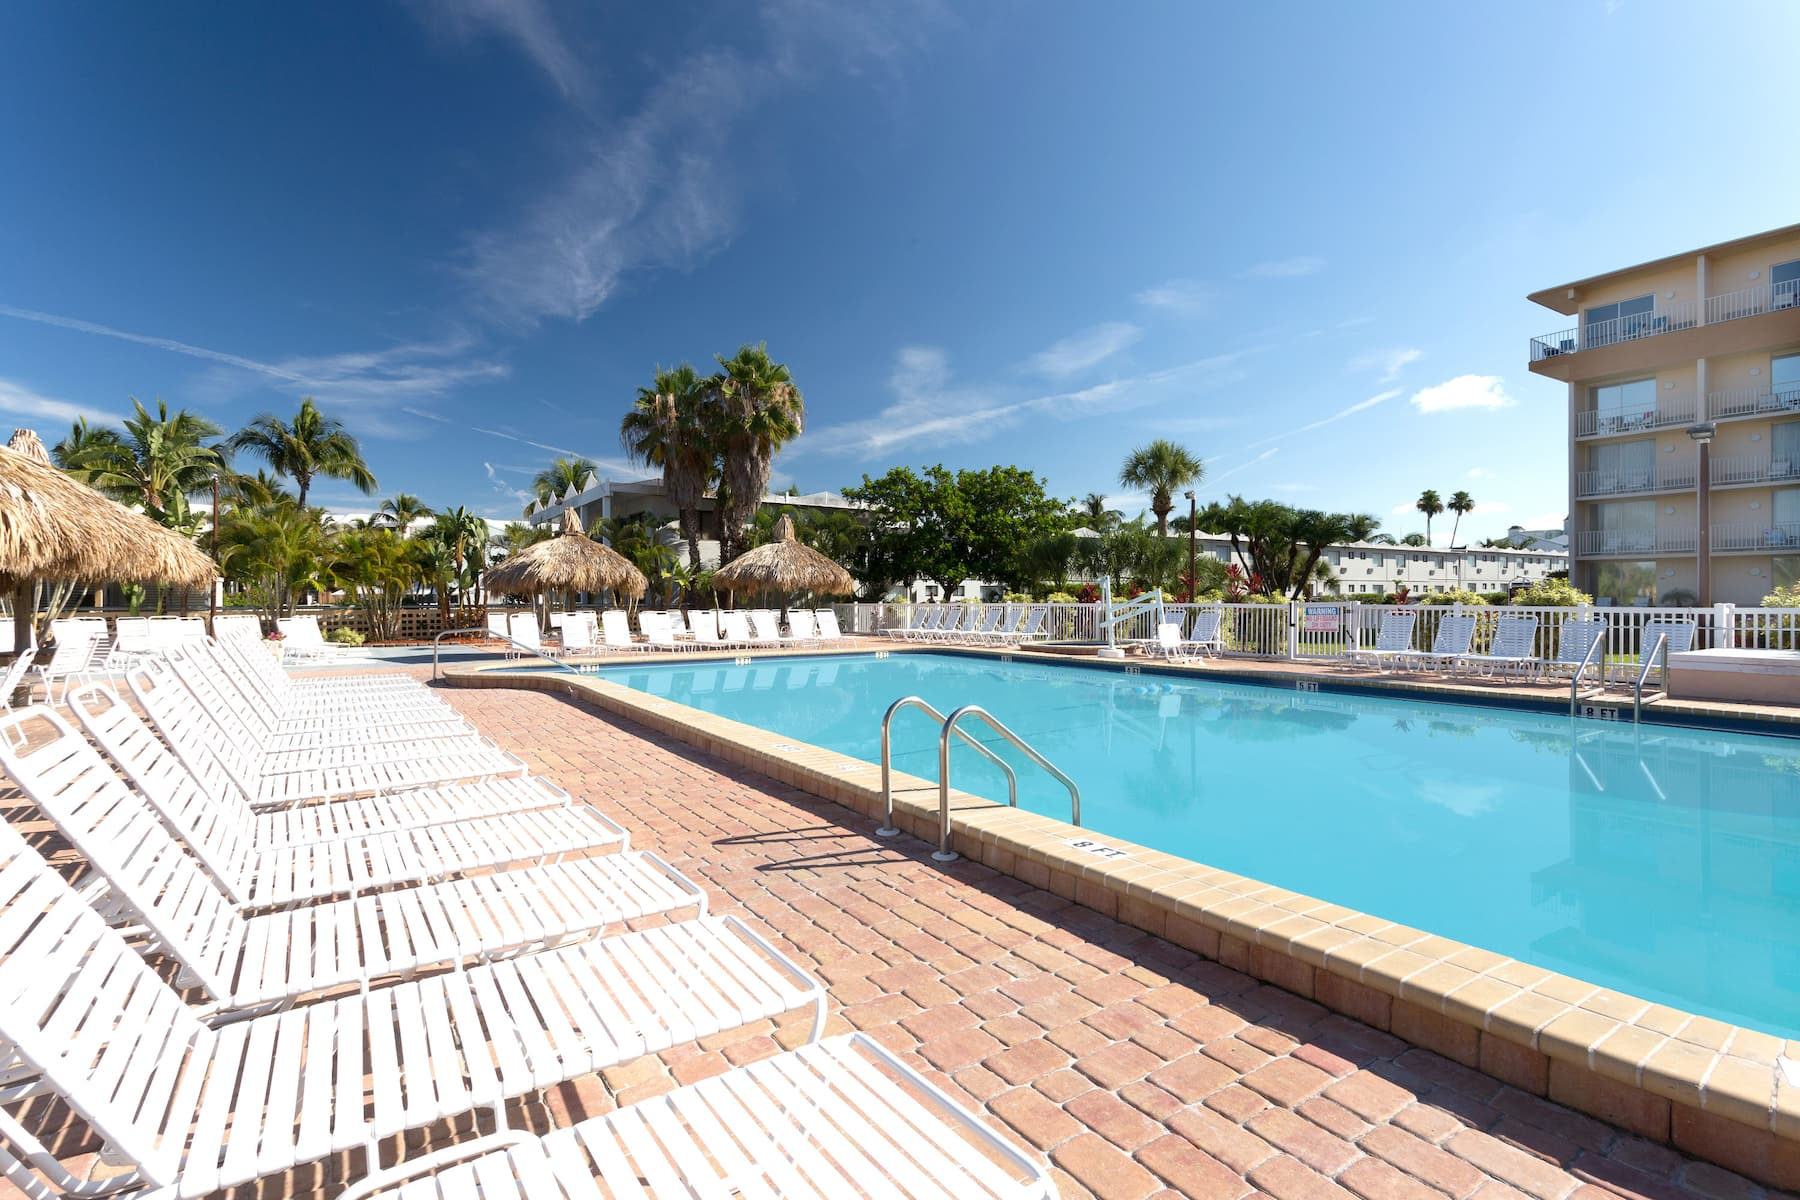 St pete beach casino hotel